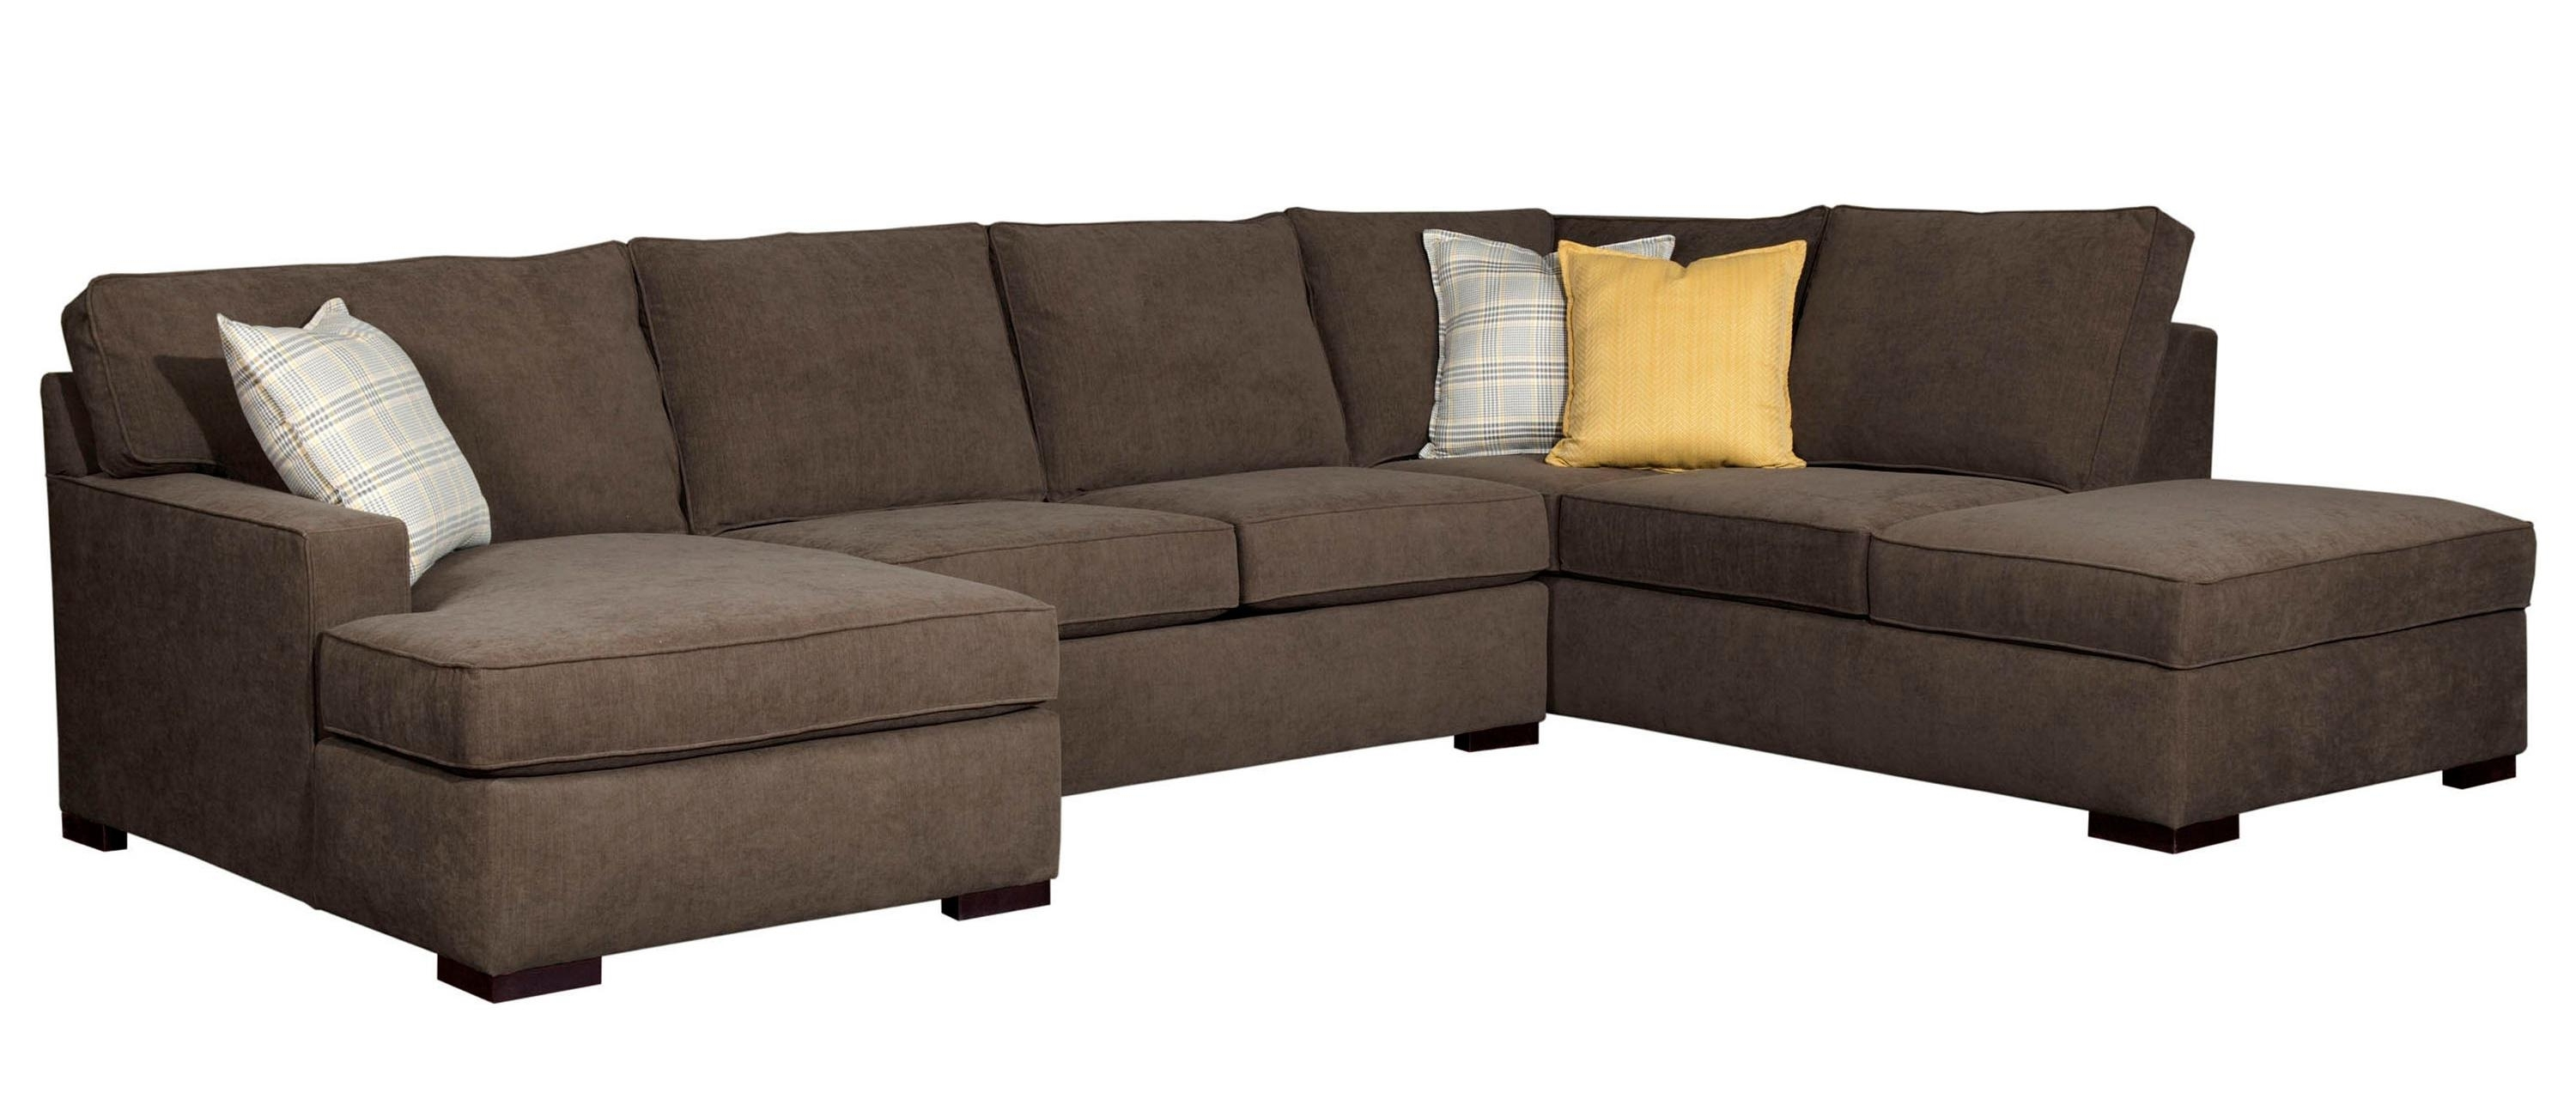 Favorite Broyhill Sectional Sofas Regarding Raphael Contemporary Sectional Sofa With Raf Corner Storage Chaise (View 8 of 20)